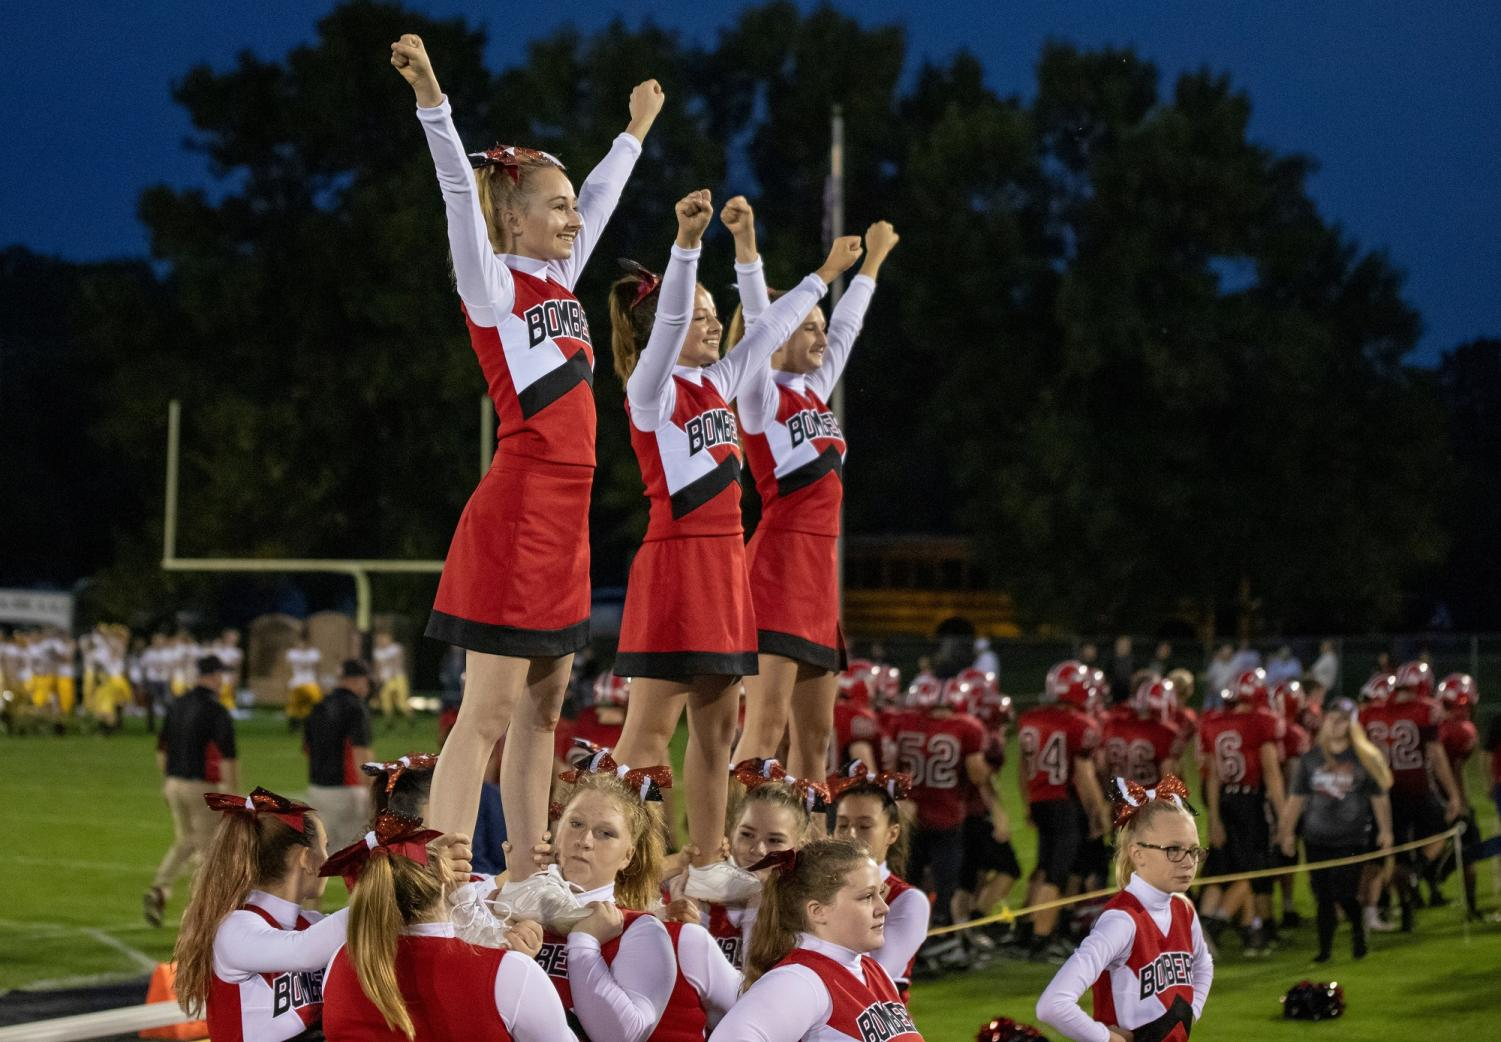 The cheer squad performing before fans at a recent home football game.